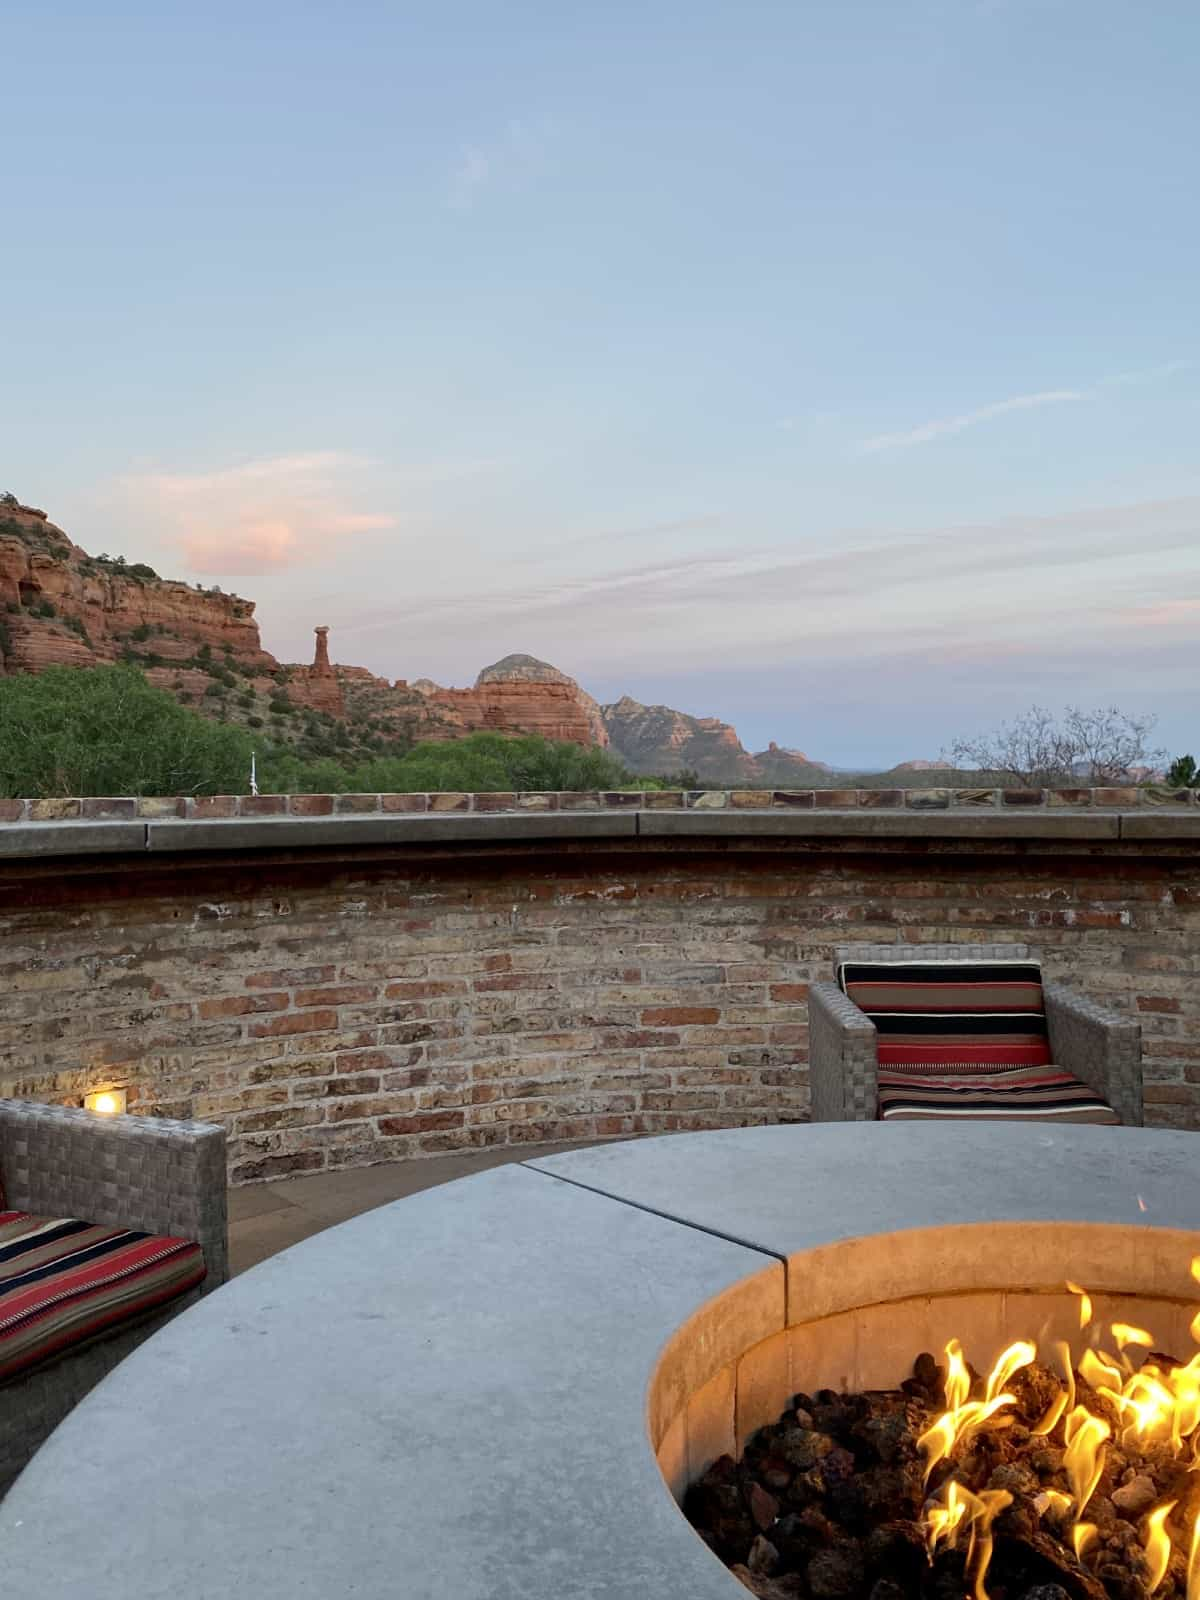 """Detailed Review of Sedona's Enchantment Resort   If you're looking for a splurge, luxury, or unique place to stay in Sedona, Enchantment Resort is probably on your list. This honest review gives a detailed account of my stay there, including rooms, grounds, pools, restaurants, service, hiking & more! And whether it qualifies as """"luxury""""."""